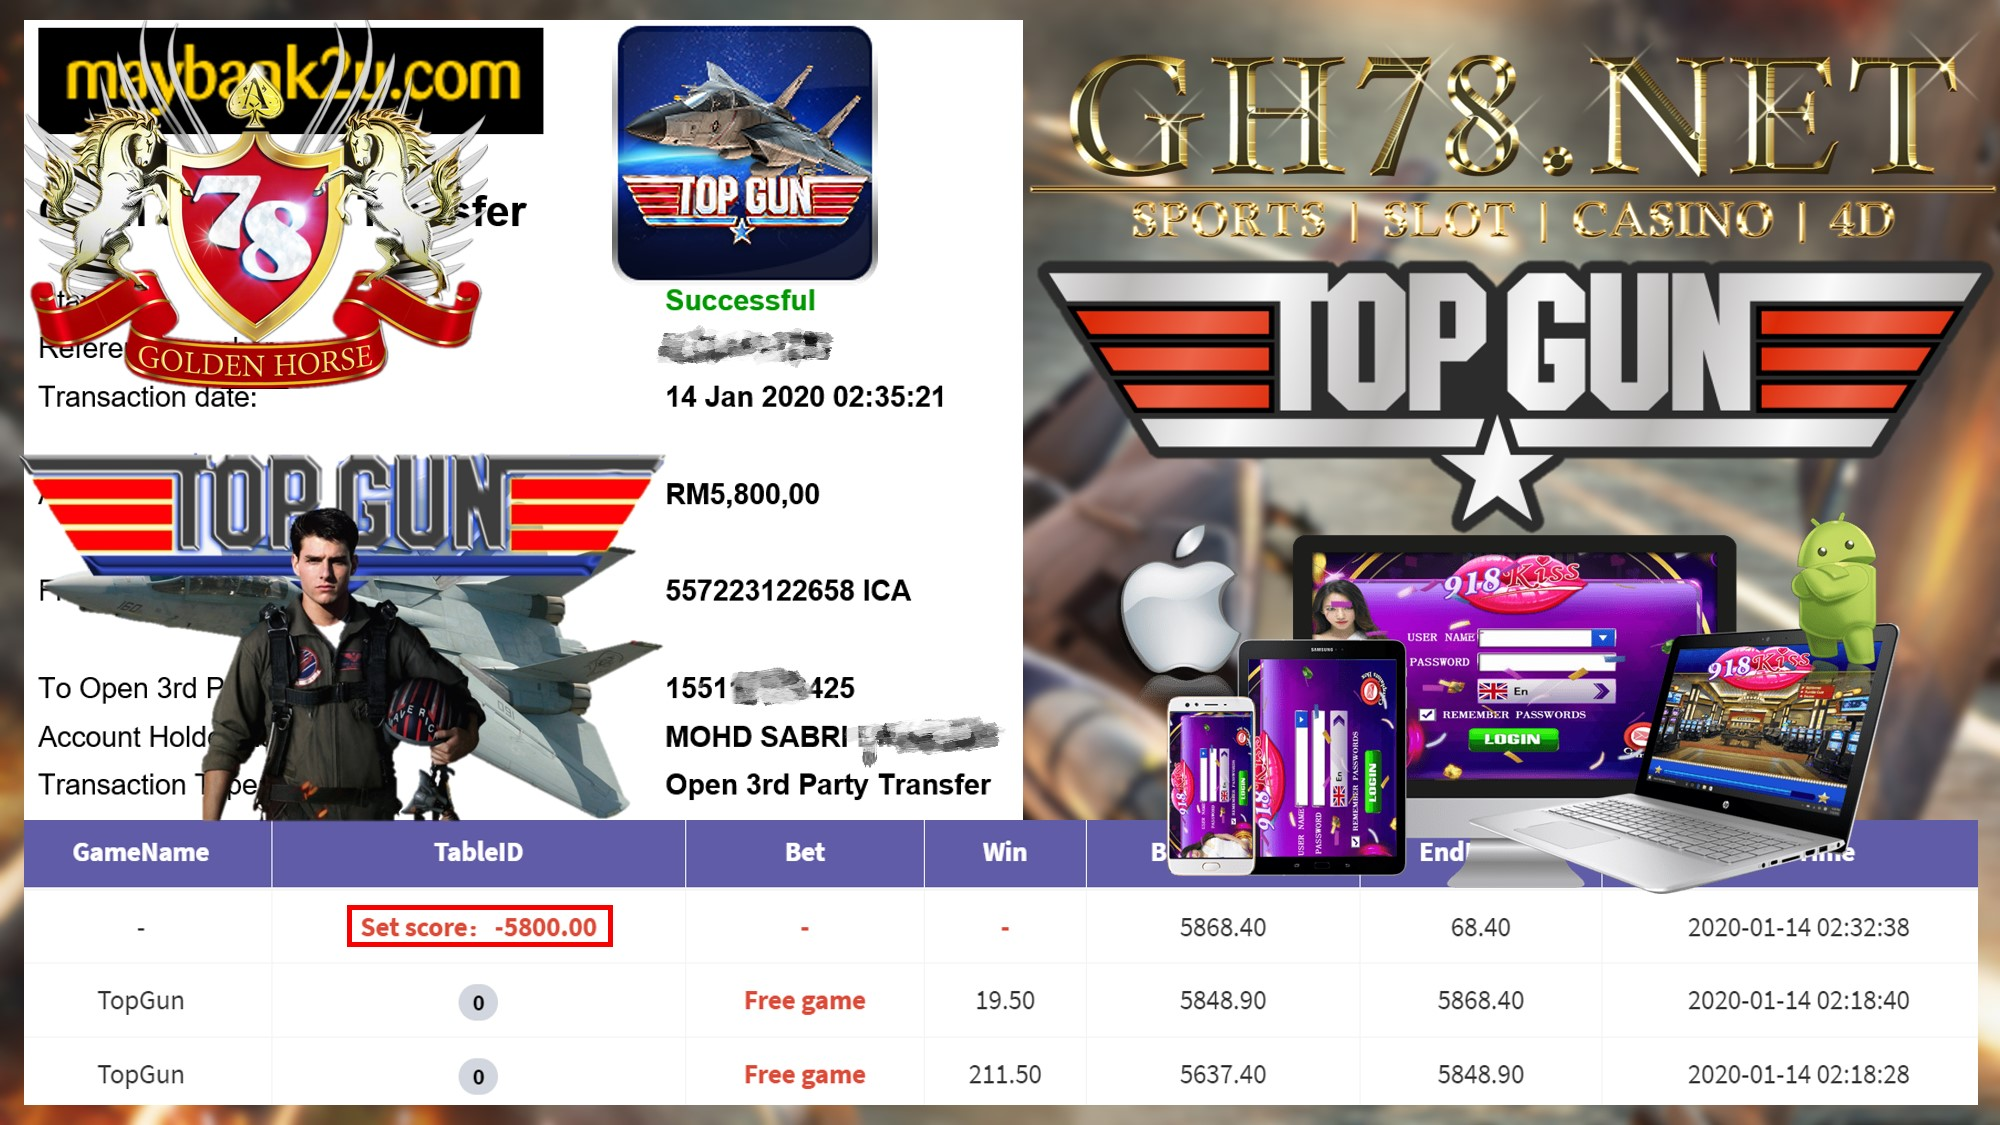 2020 NEW YEAR !!! MEMBER MAIN 918KISS FT.TOPGUN WITHDRAW RM5800 !!!